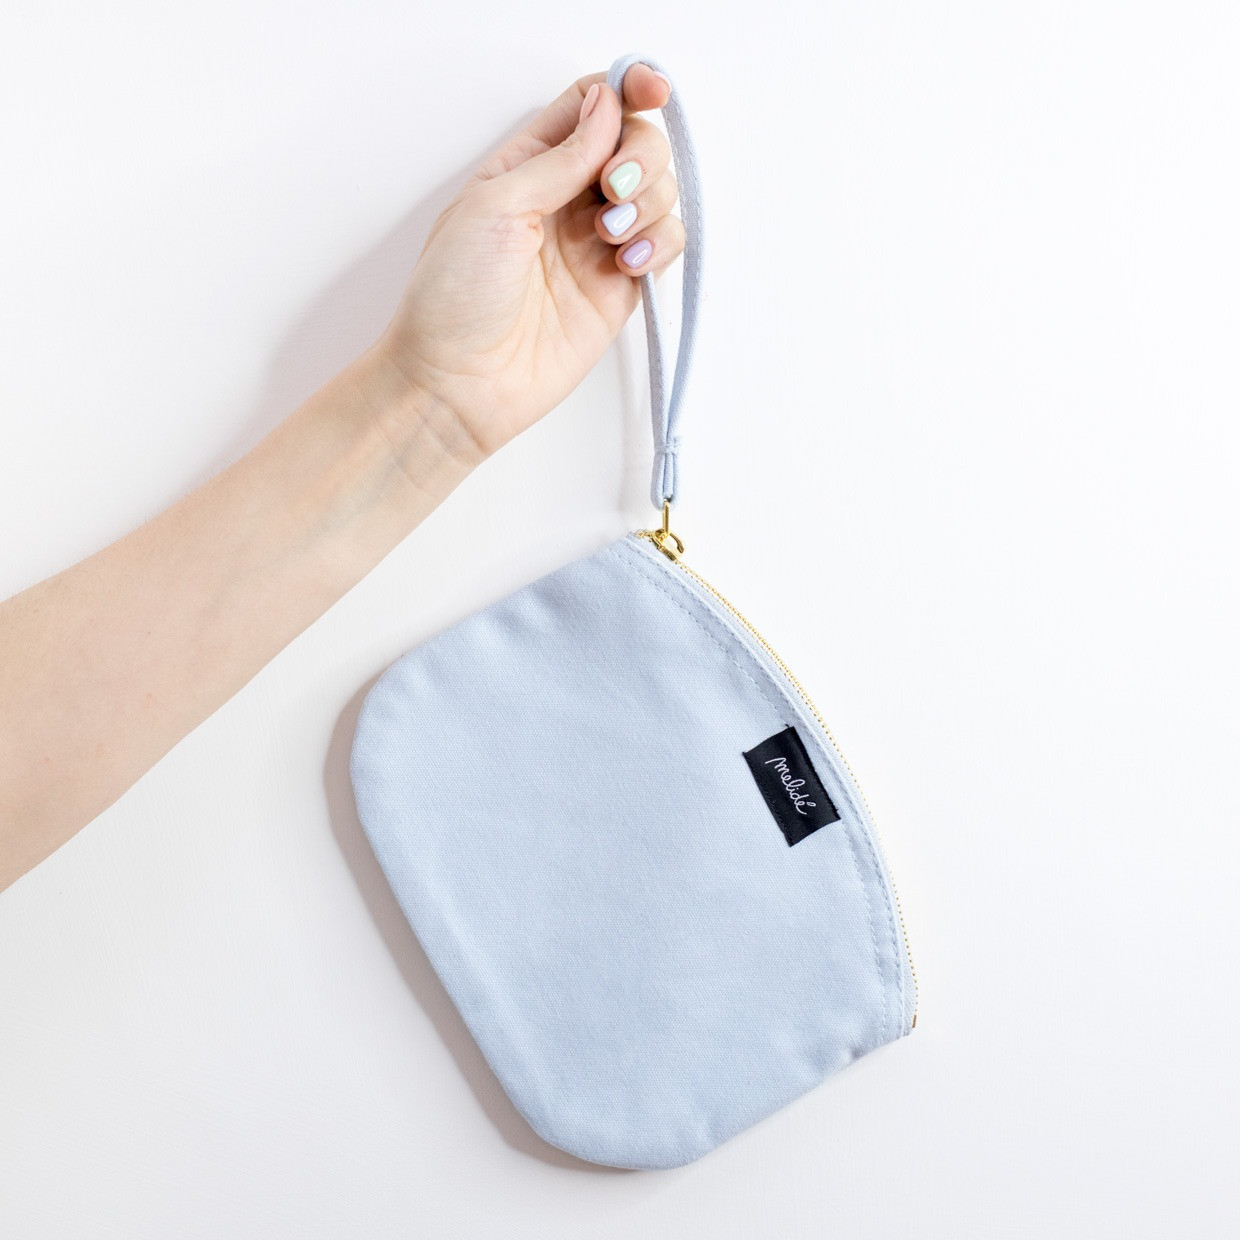 The ZIPPED POUCH M - Gemelli